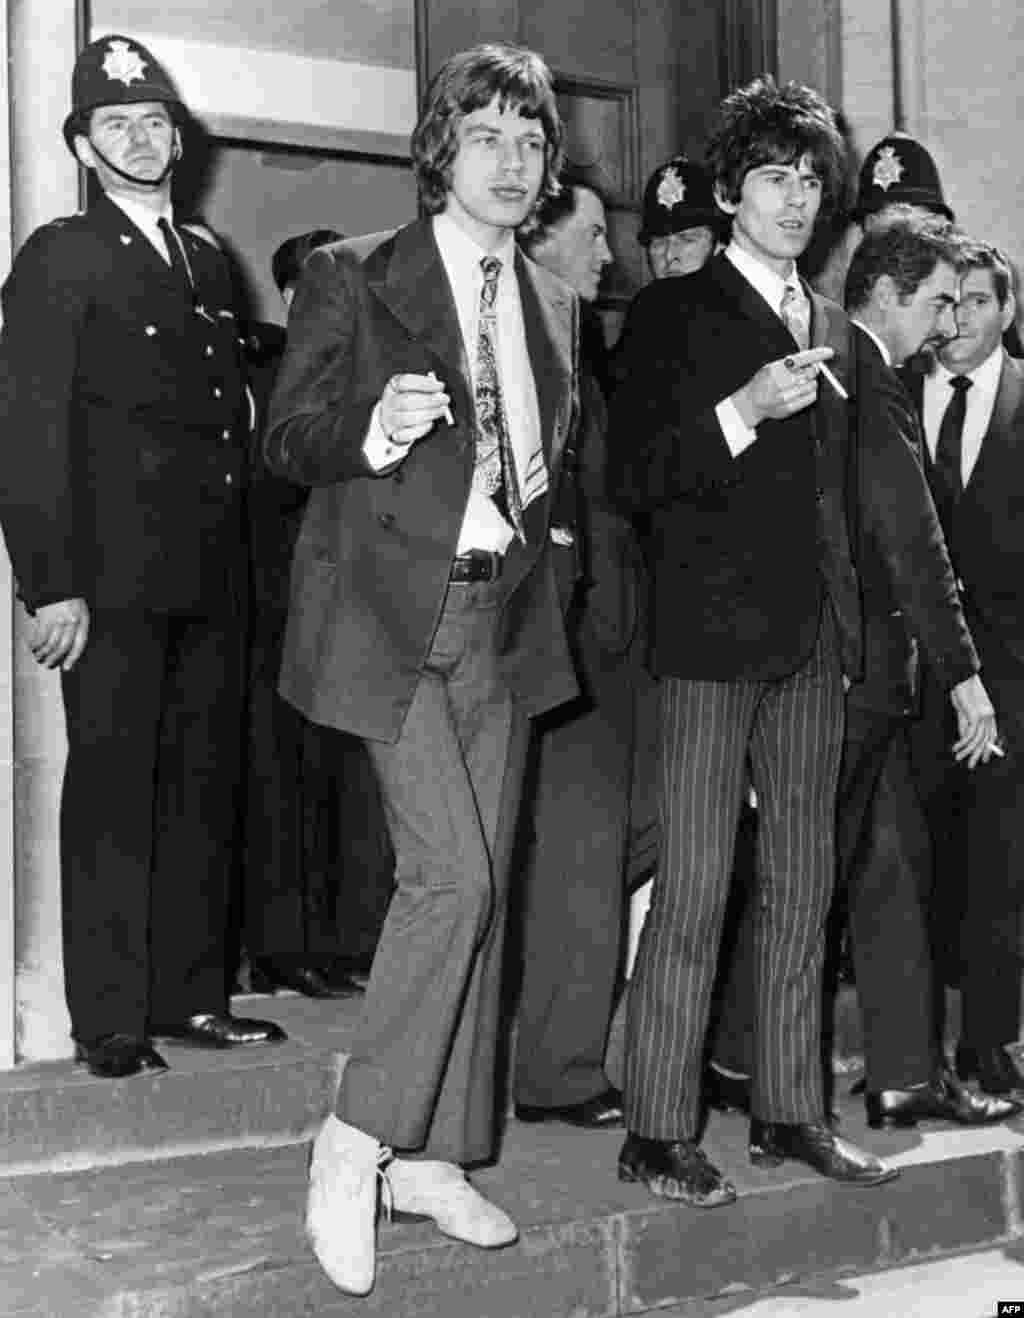 Jagger and Richards leave a court in Chichester, England, after being charged with drugs possession in 1967 following a police raid of Richards' home.